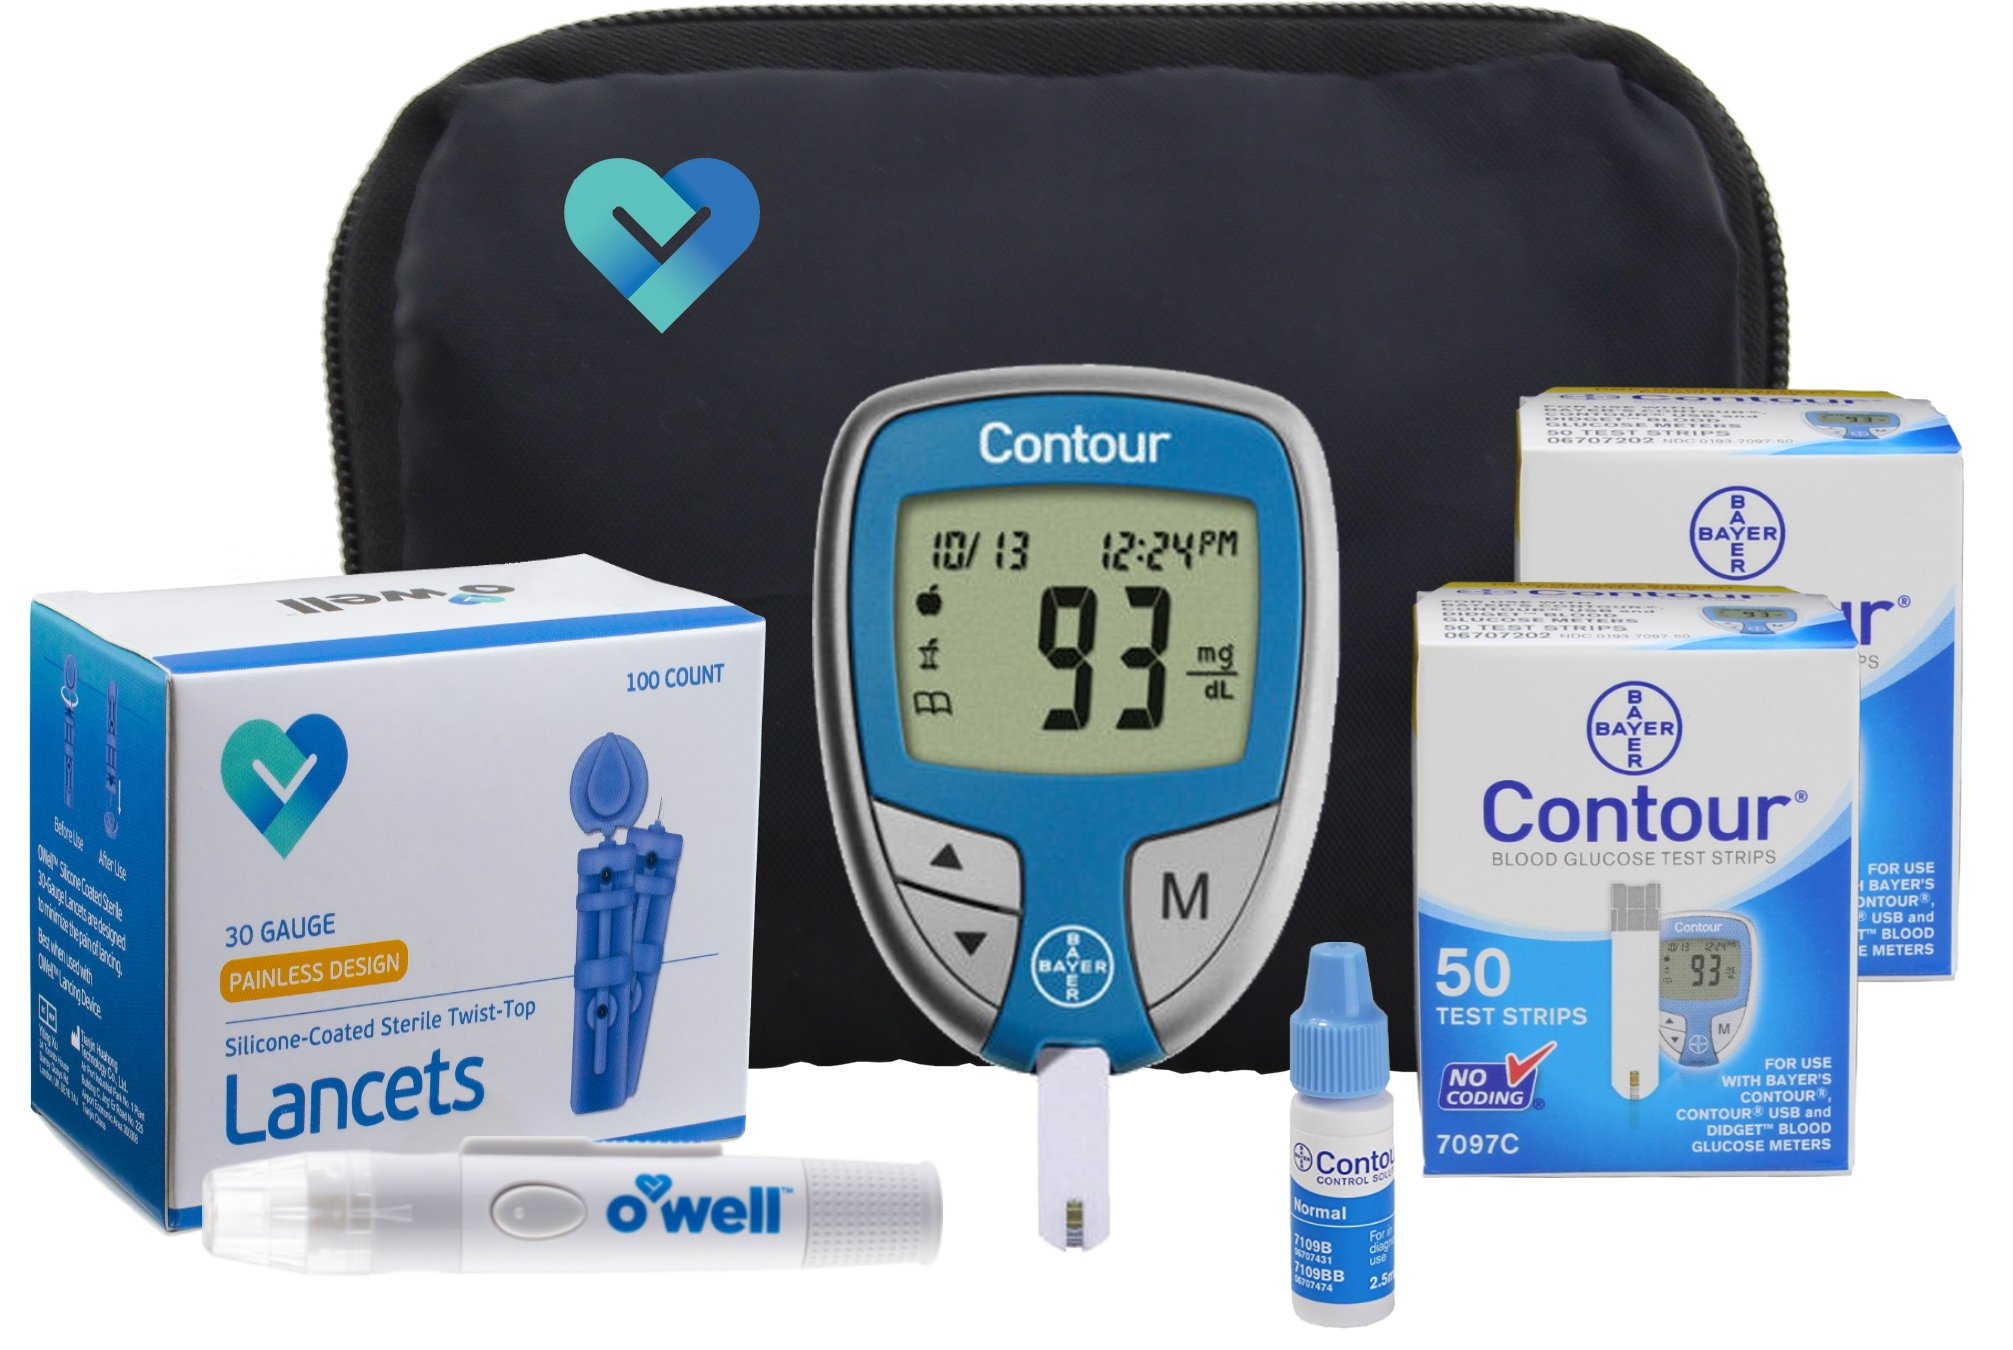 Contour Diabetes Blood Glucose Testing Kit - Contour Meter, 100 Contour Test Strips, 100 OWell Lancets, OWell Lancing Device, Control Solution, Manual, Log Book & Carry Case